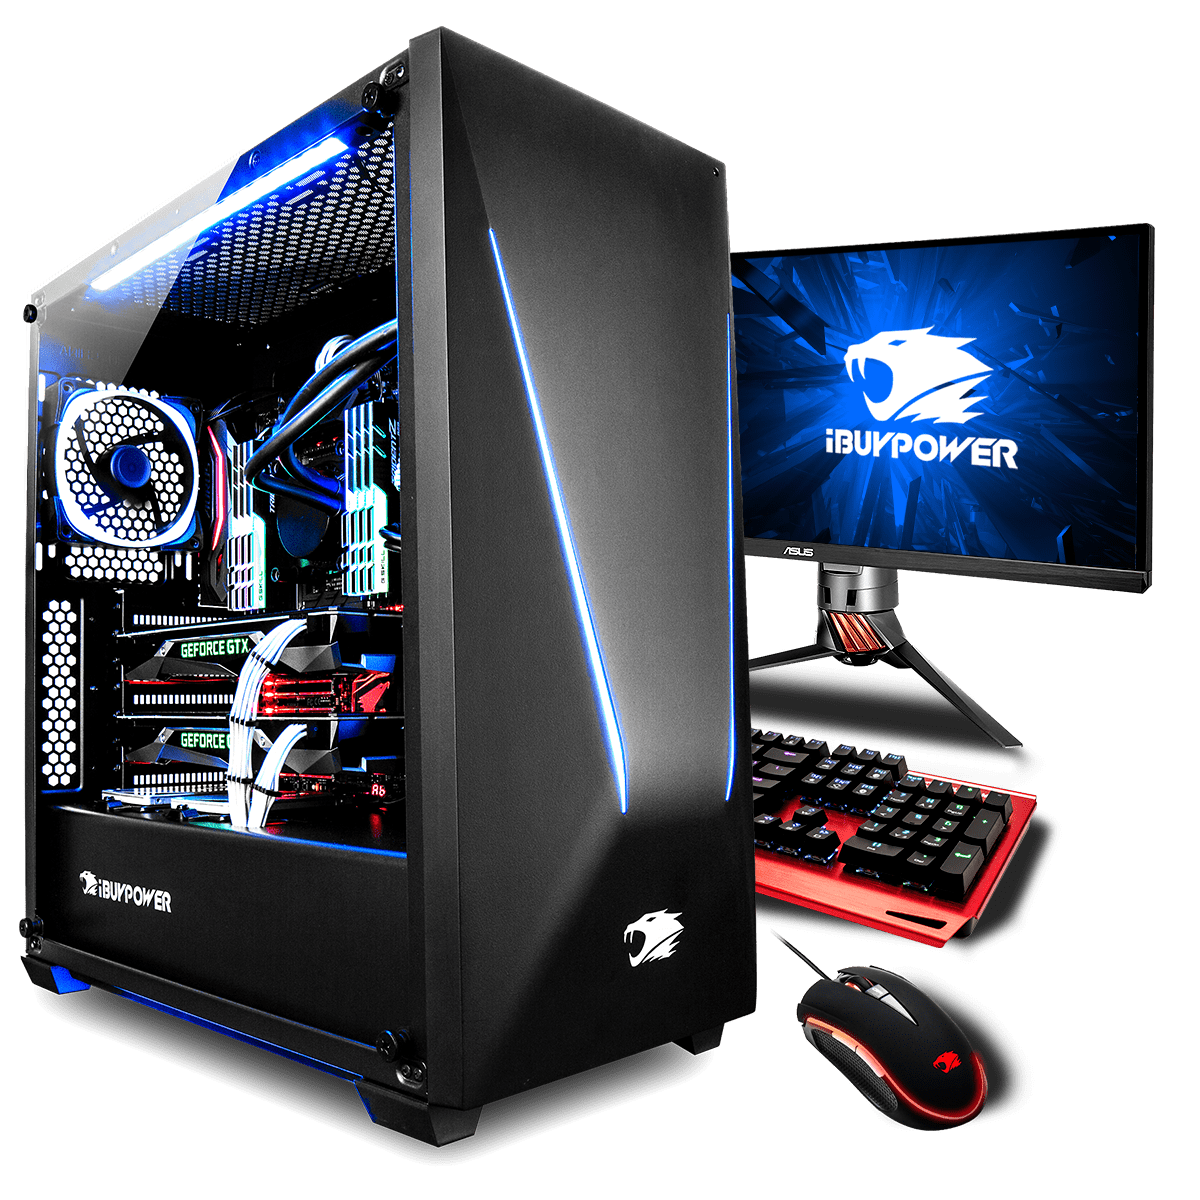 4449231dc6a Cyber-Monday-Sale-AMD-Threadripper: iBUYPOWER® Gaming PC